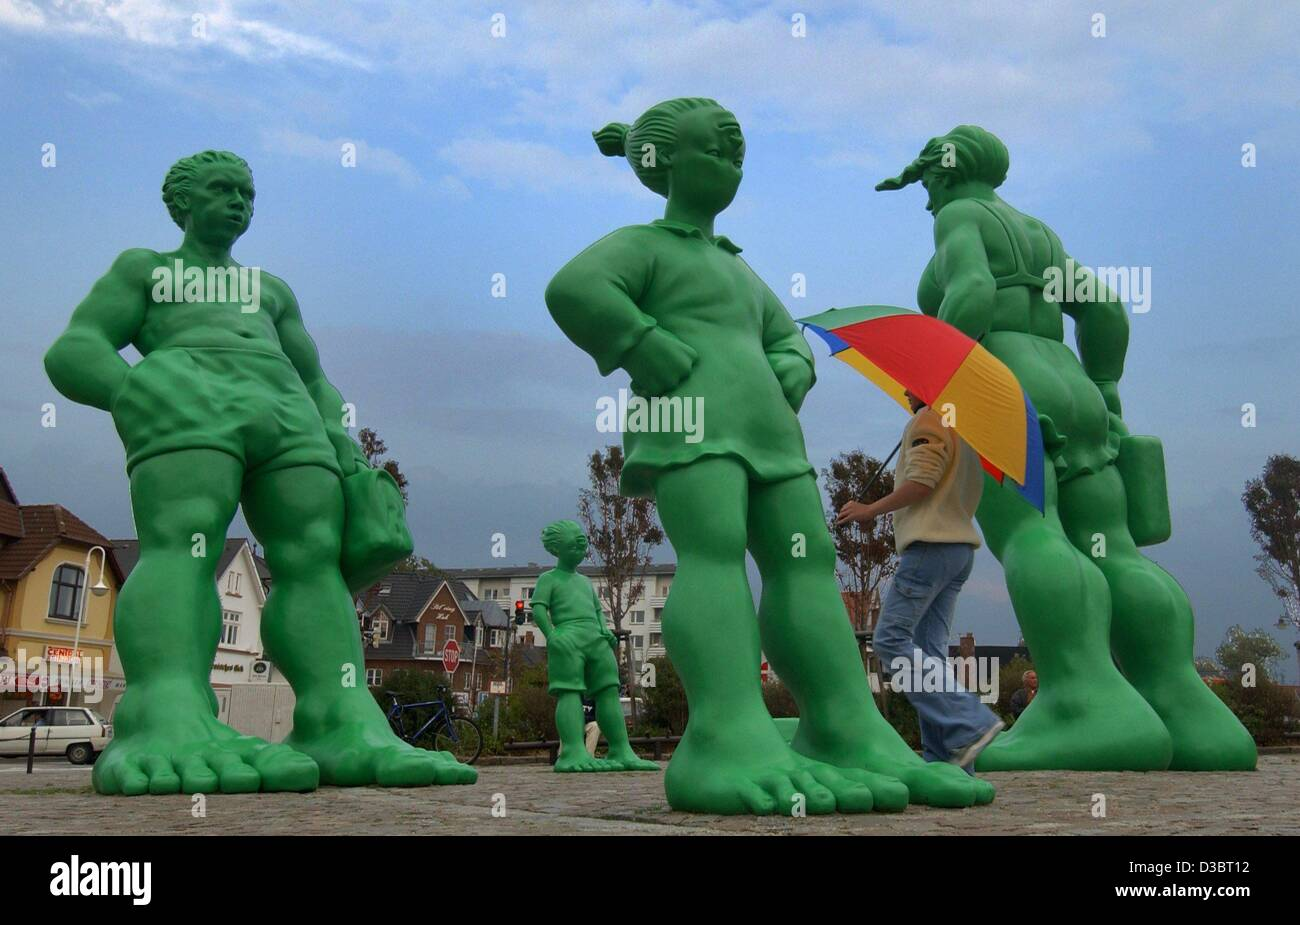 (dpa) - A passer-by walks through the group of skew 'travelling giants' in front of the train station in - Stock Image